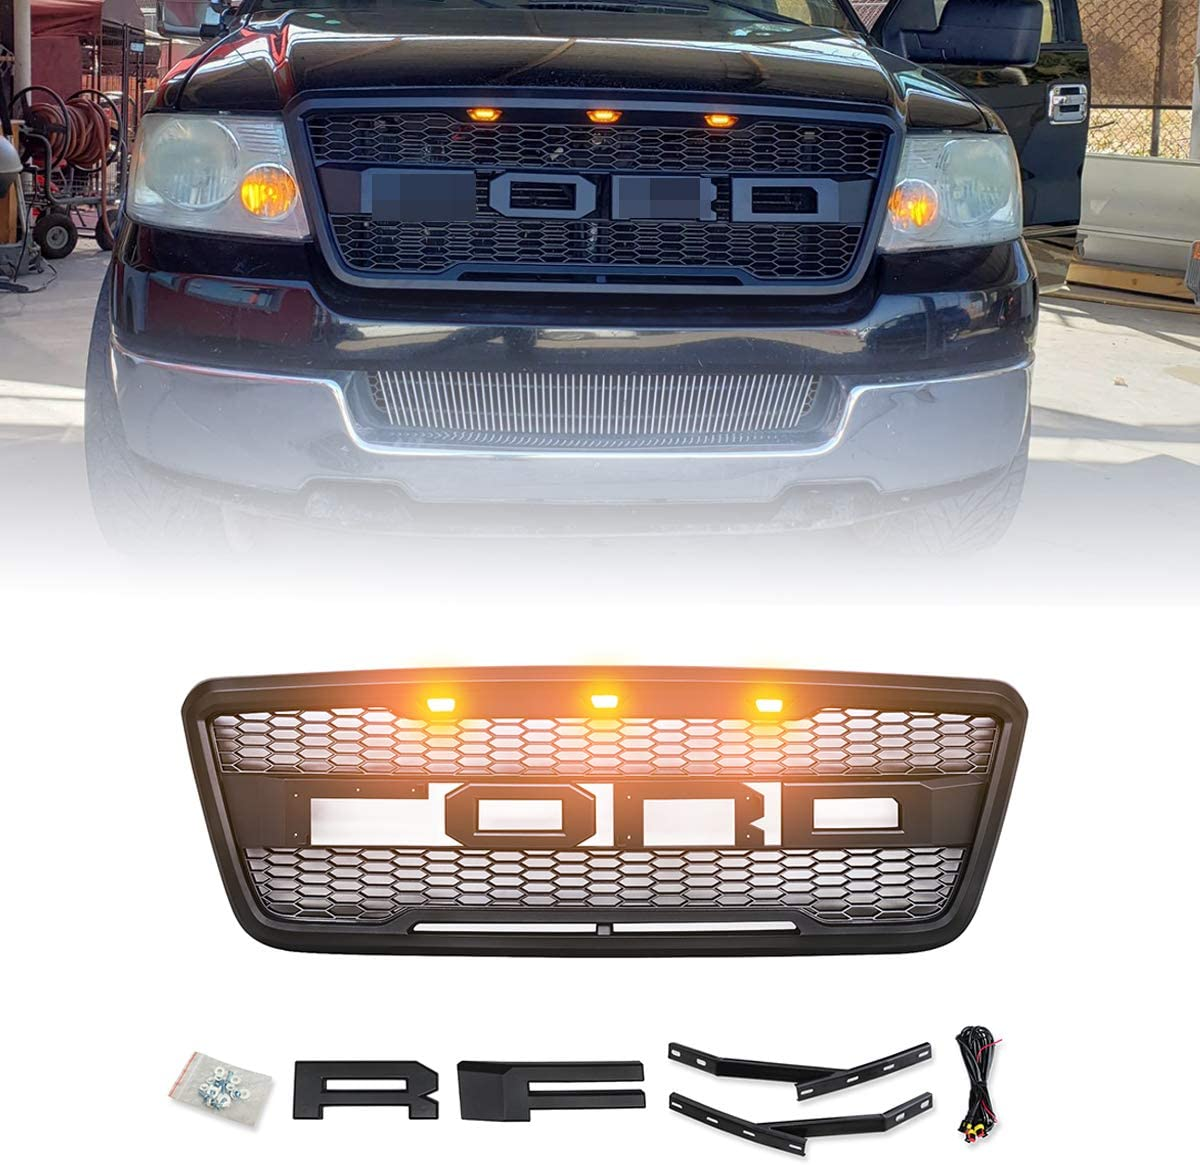 VZ4X4 Raptor Style Grill Mesh Grille, Compatible with Ford F150 2004 2005 2006 2007 2008 - Matte Black